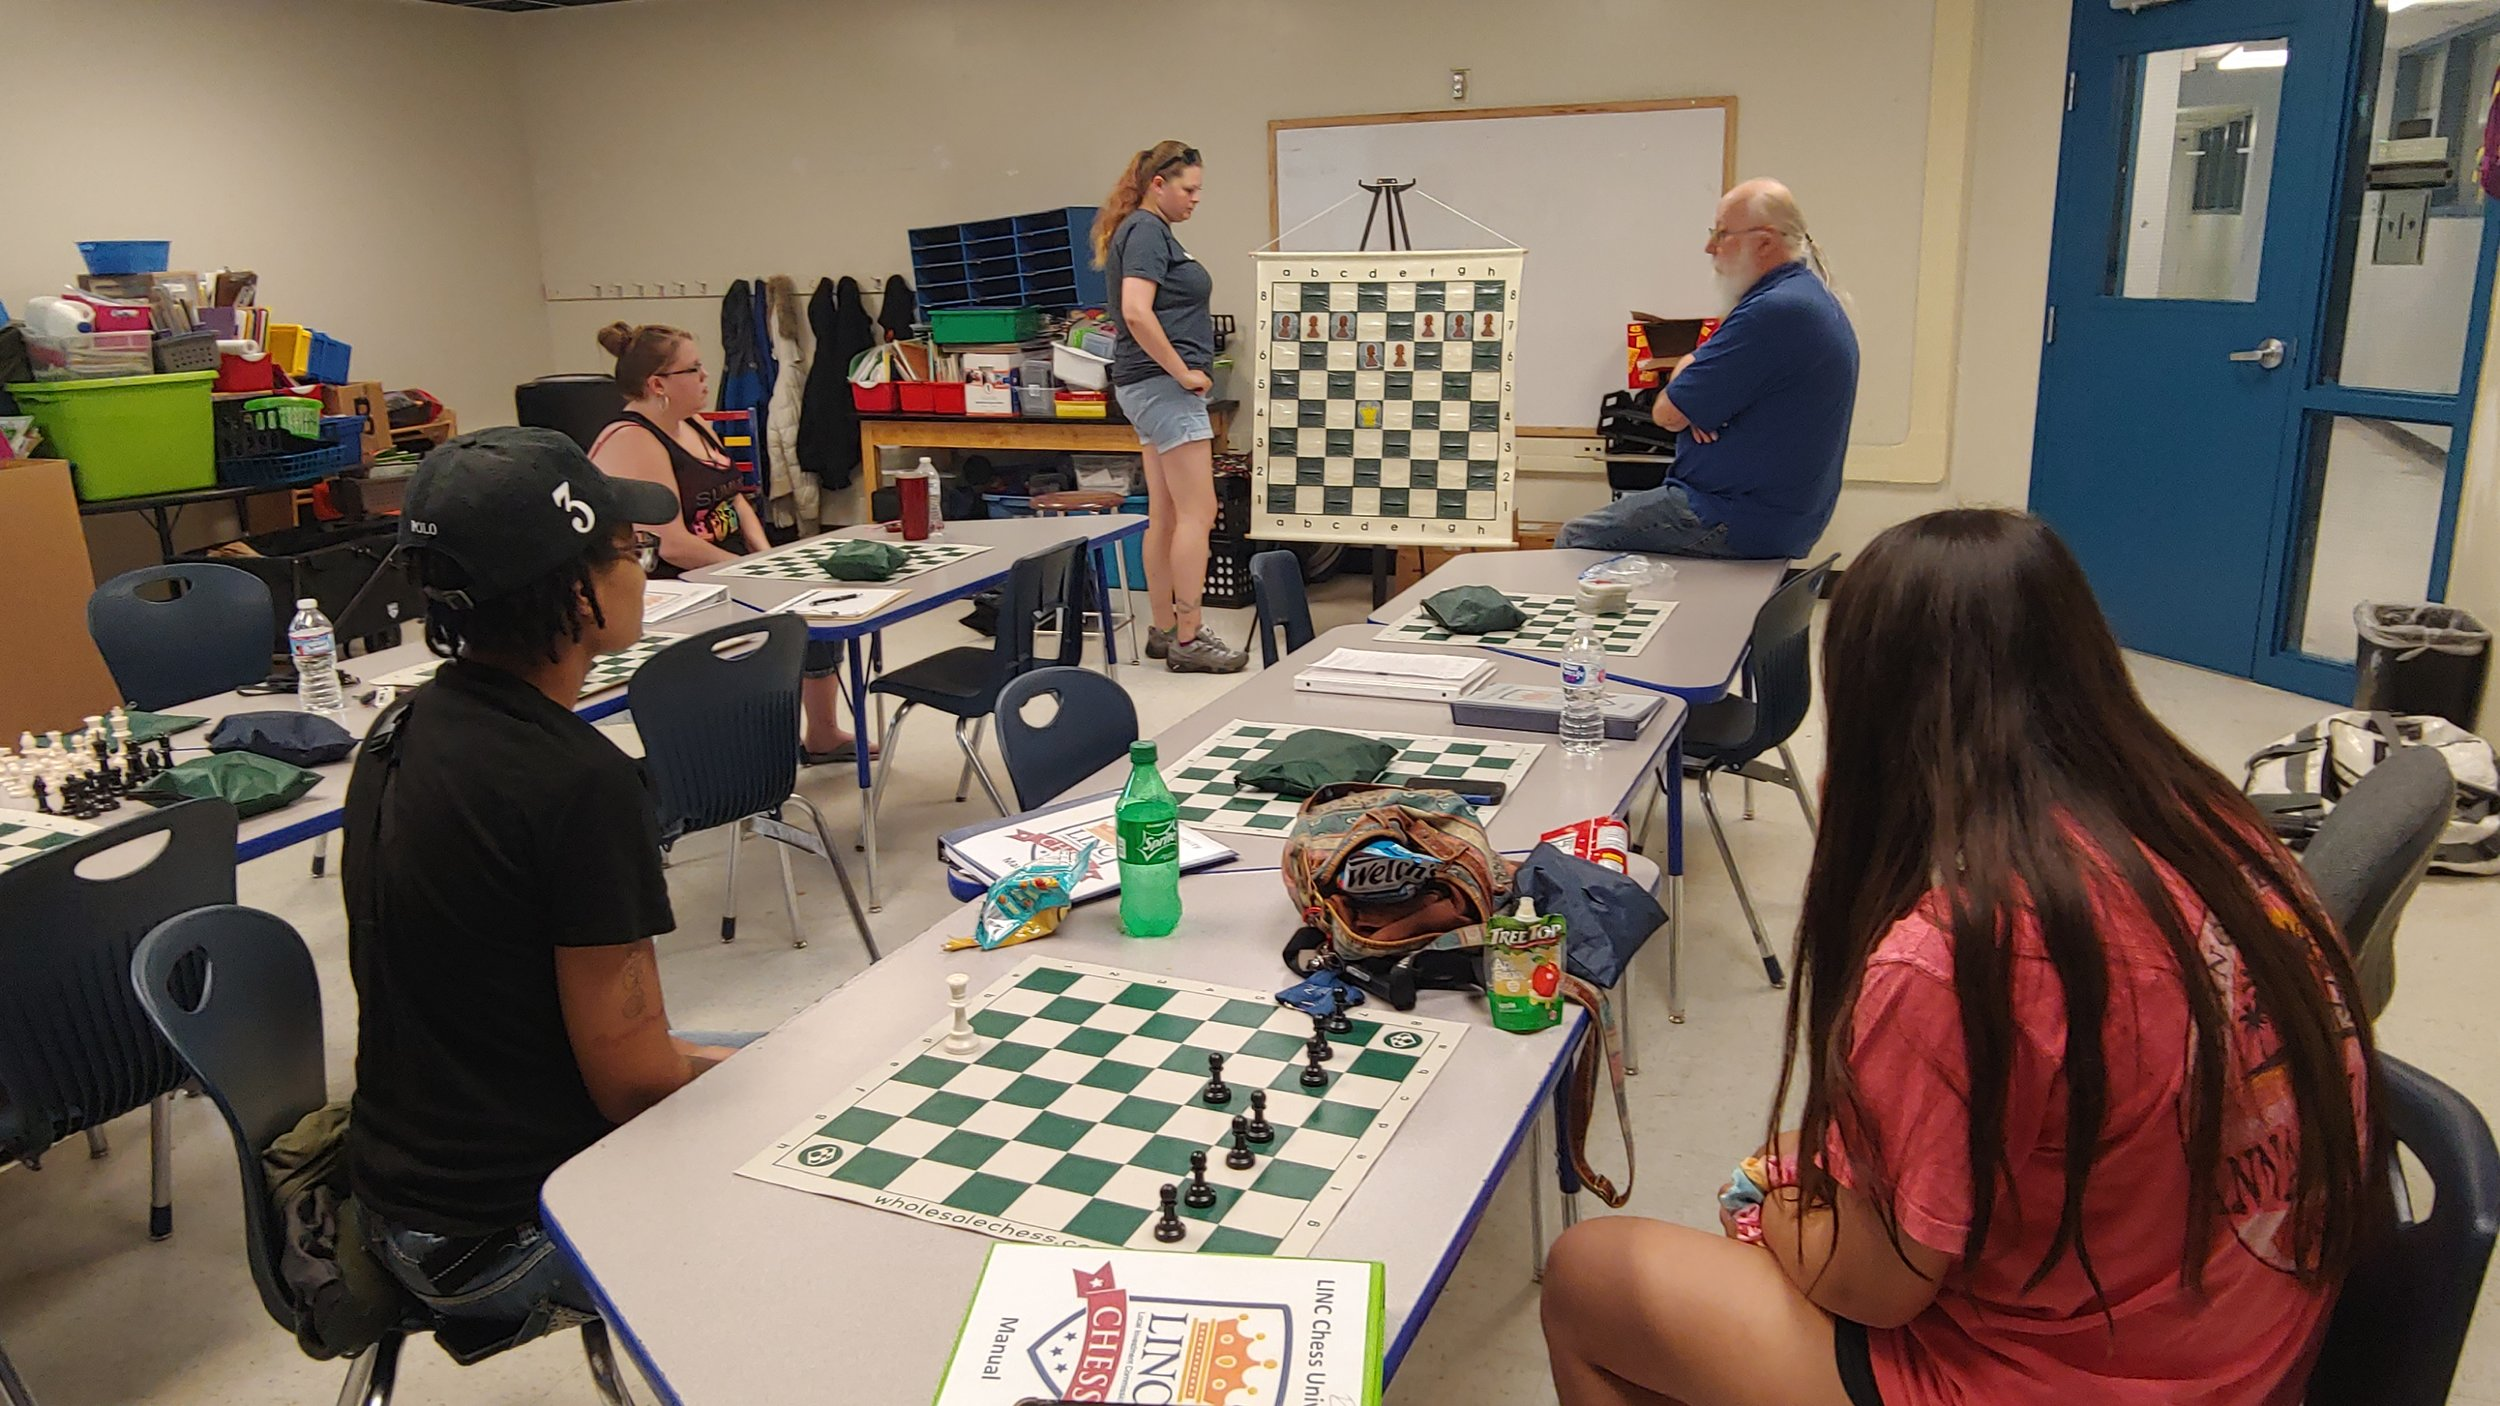 LINC staff and parents at LINC's Chess University learn strategies to teach the game to students July 17 at Genesis School.